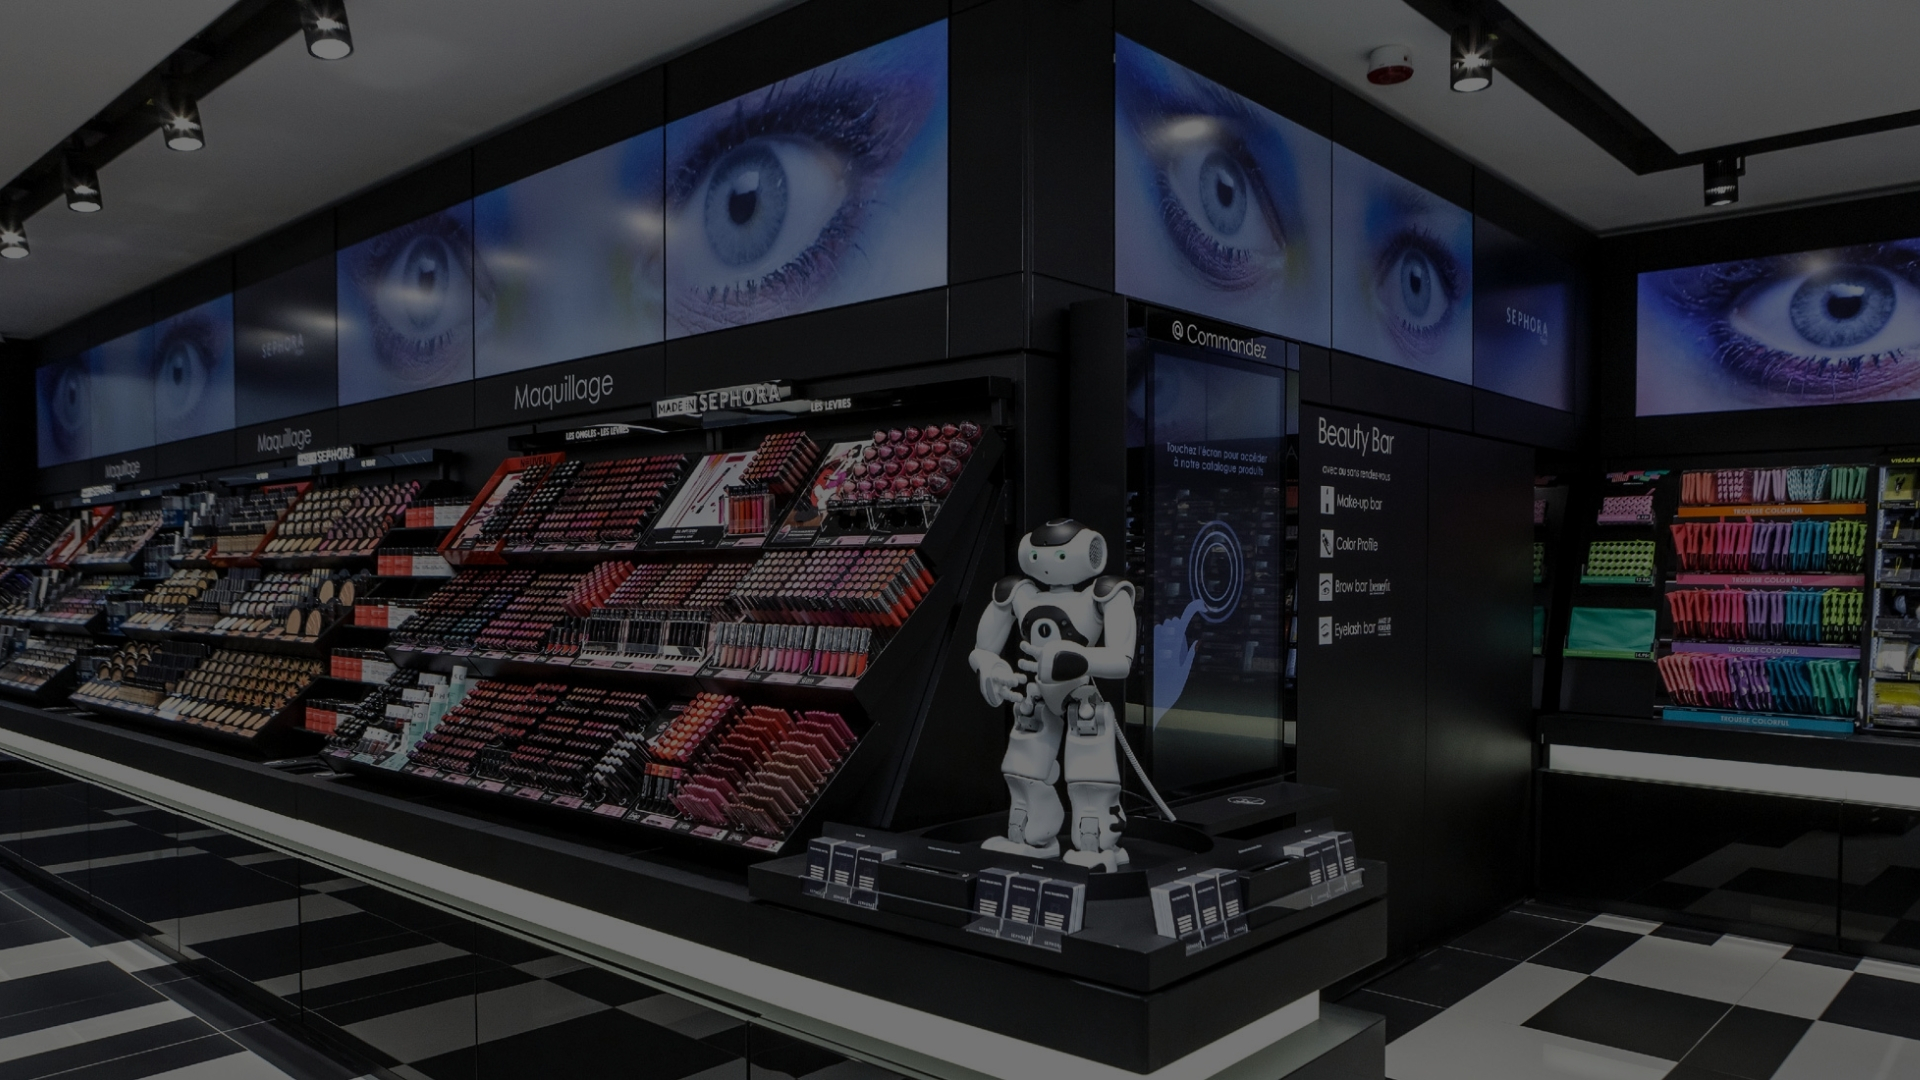 This Week in Retail Tech > Sephora is Doing it Again > Re:Tech